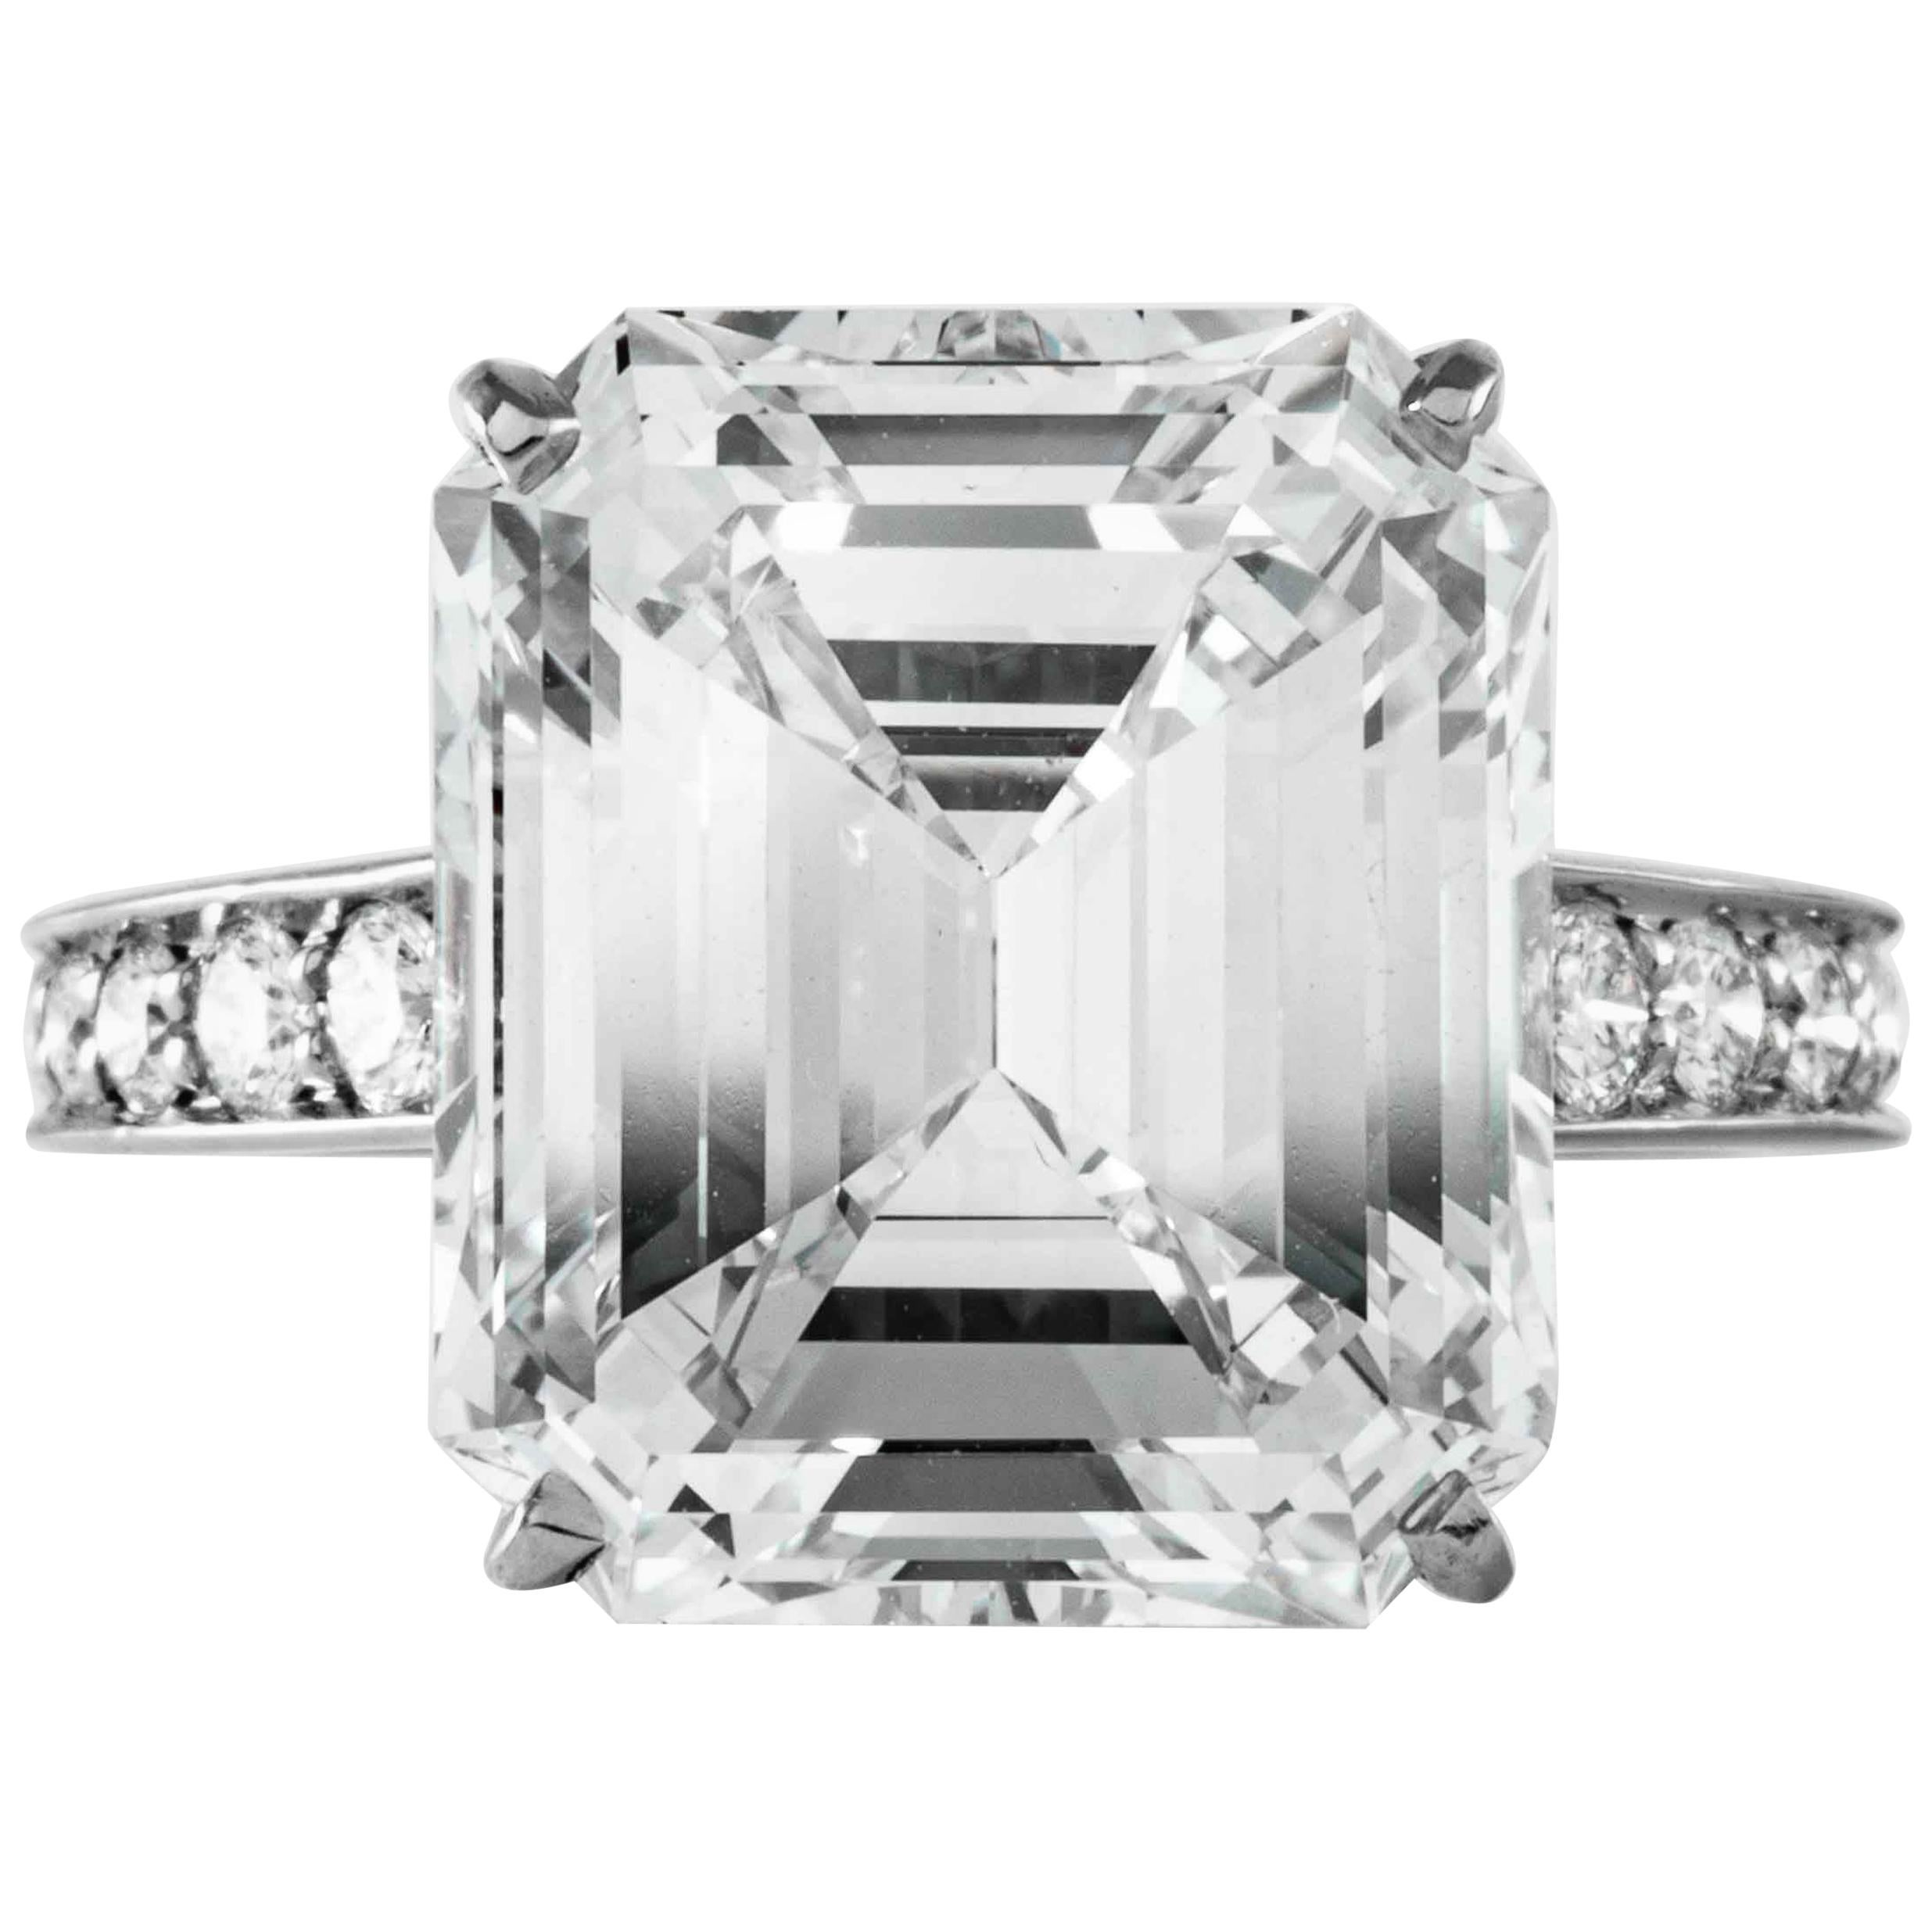 Cartier GIA Certified 10.29 Carat I VS2 Emerald Cut Diamond and Platinum Ring